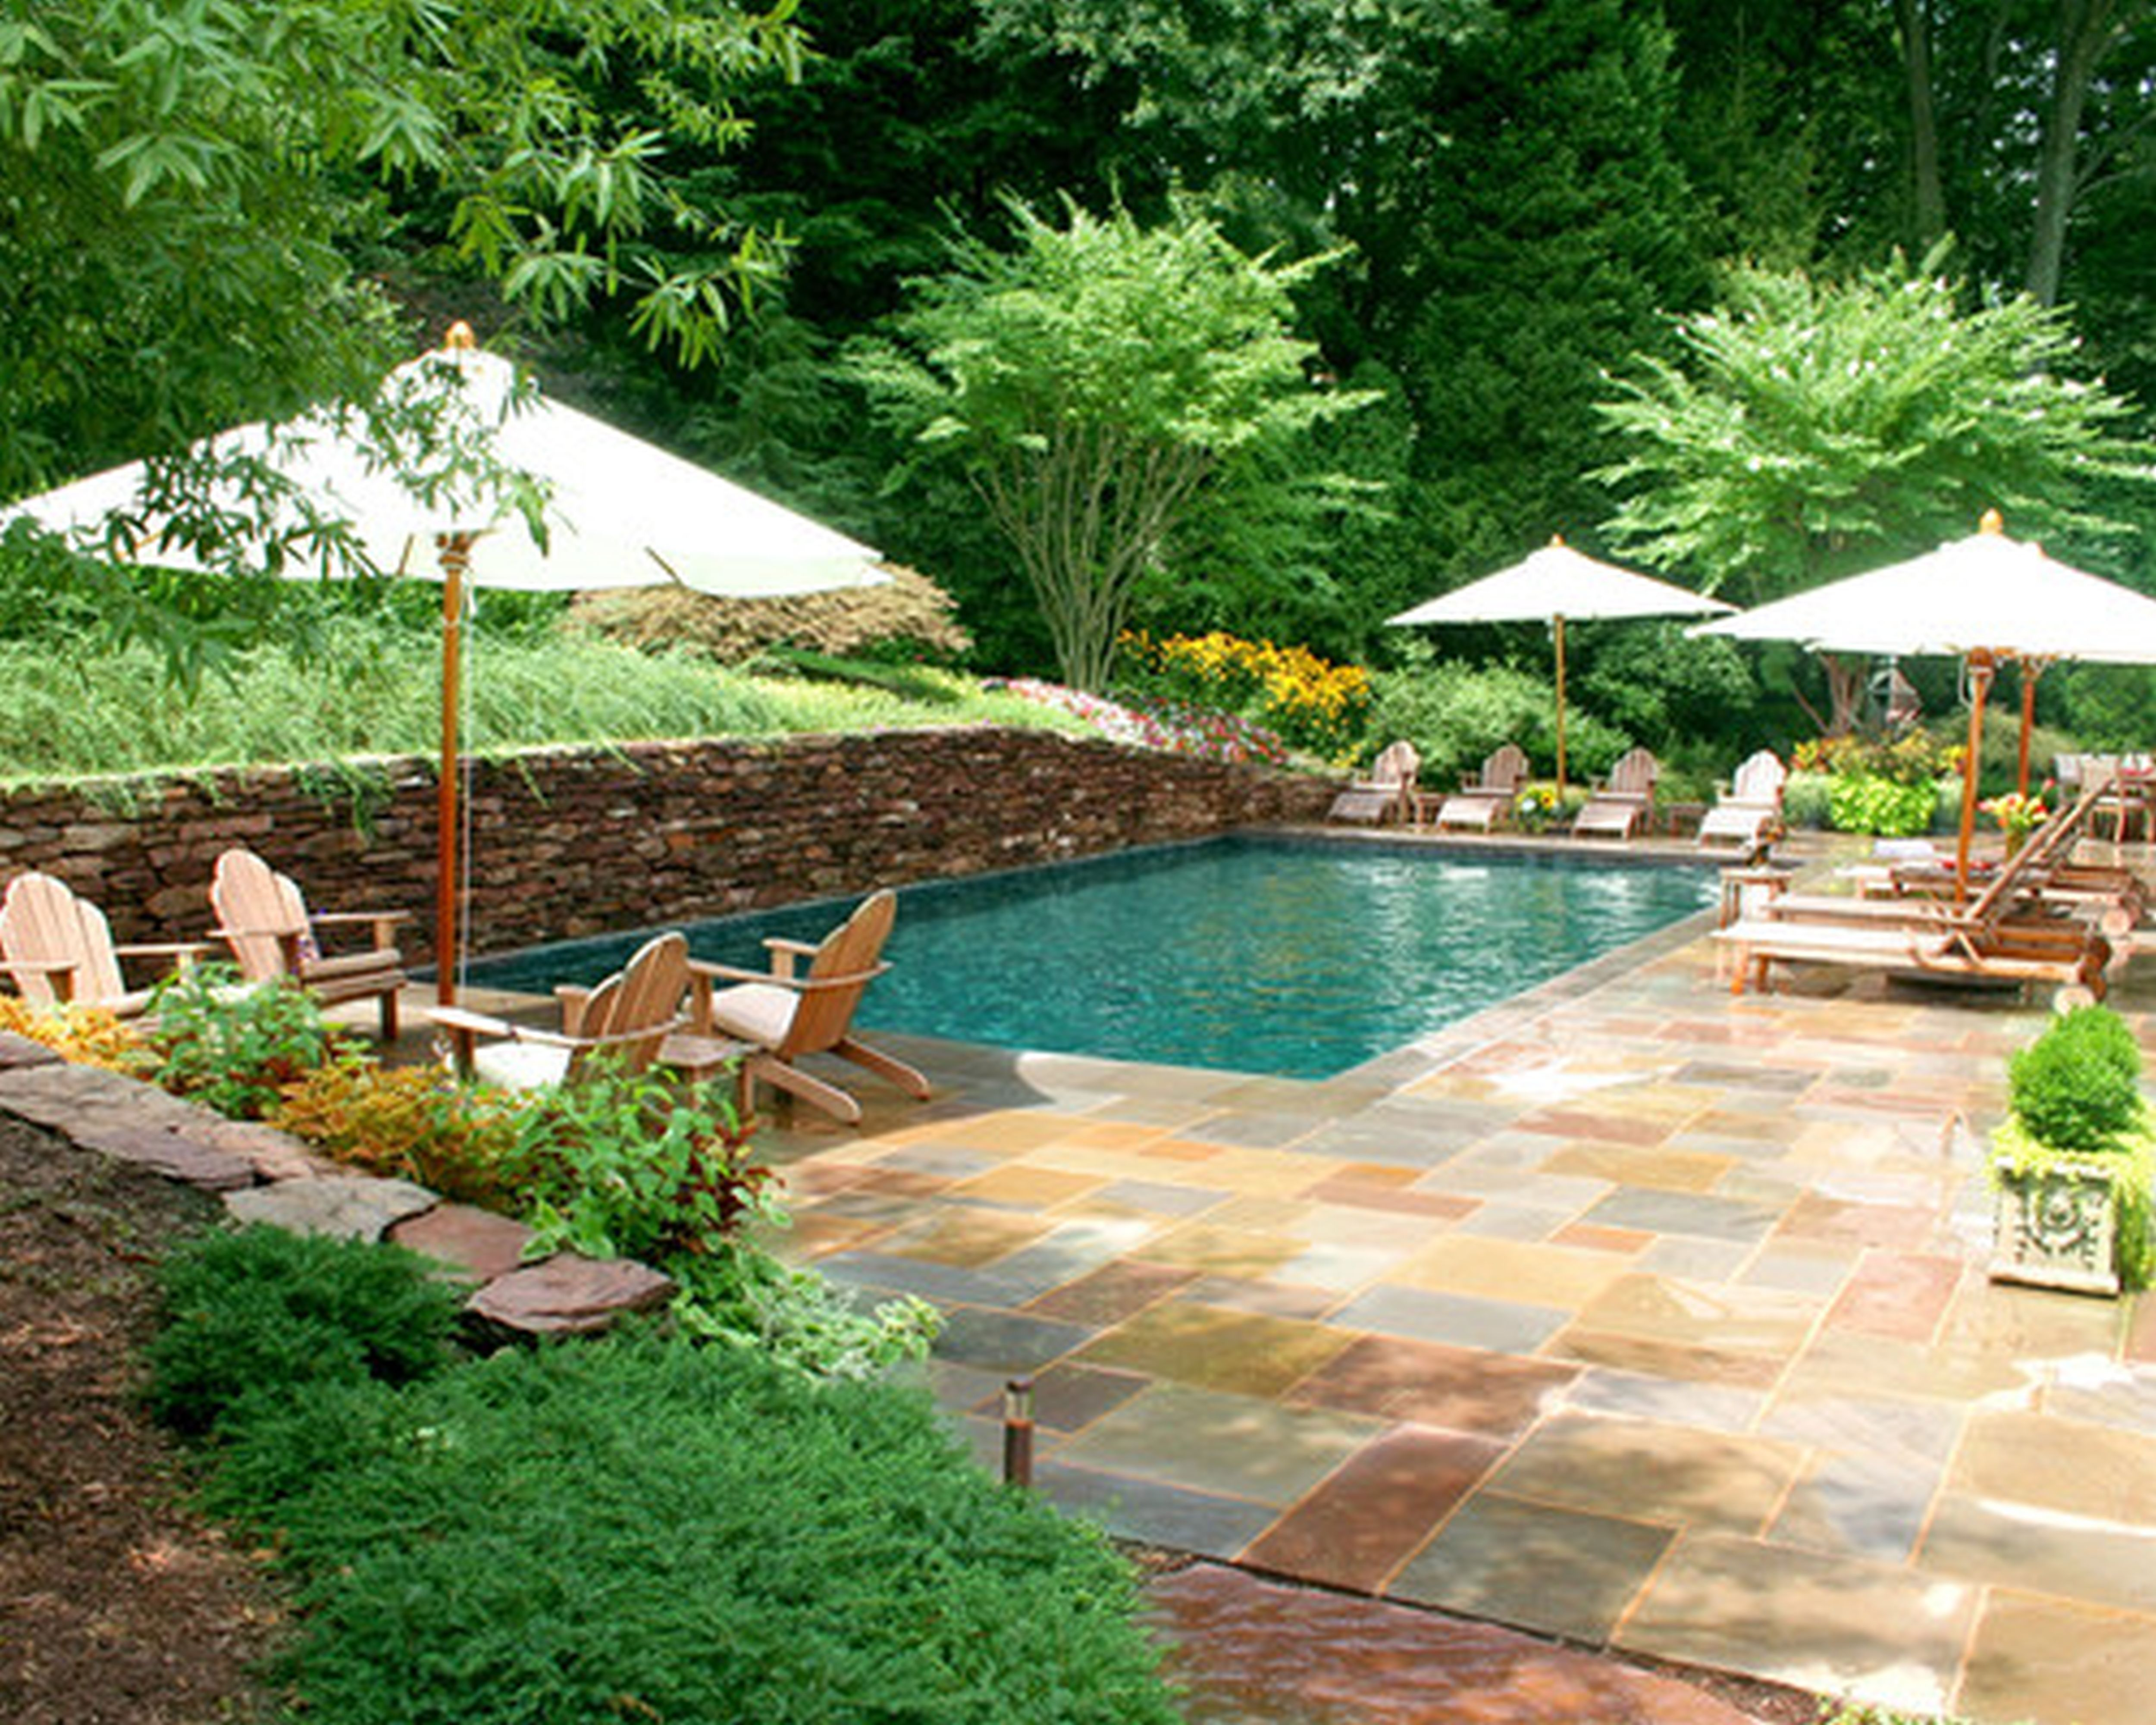 Designing your backyard swimming pool part i of ii for Swimming pool landscape design ideas